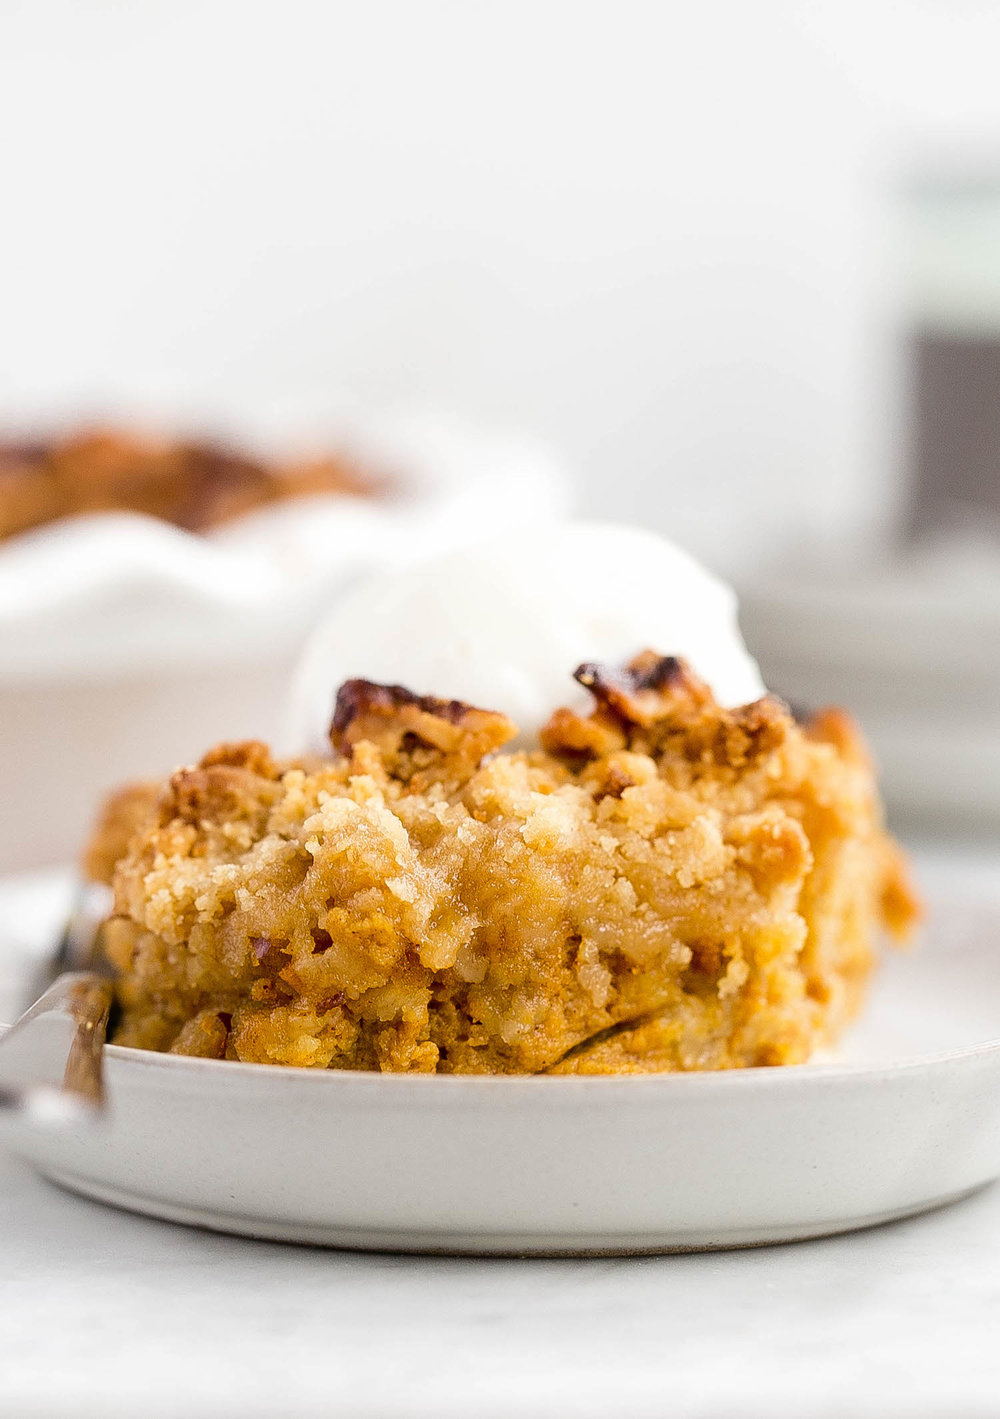 Pumpkin Pie Crumble: rich, creamy, perfectly spiced pumpkin filling topped with a crunchy, nutty, brown sugar crumble. Perfect for Thanksgiving! | TrufflesandTrends.com